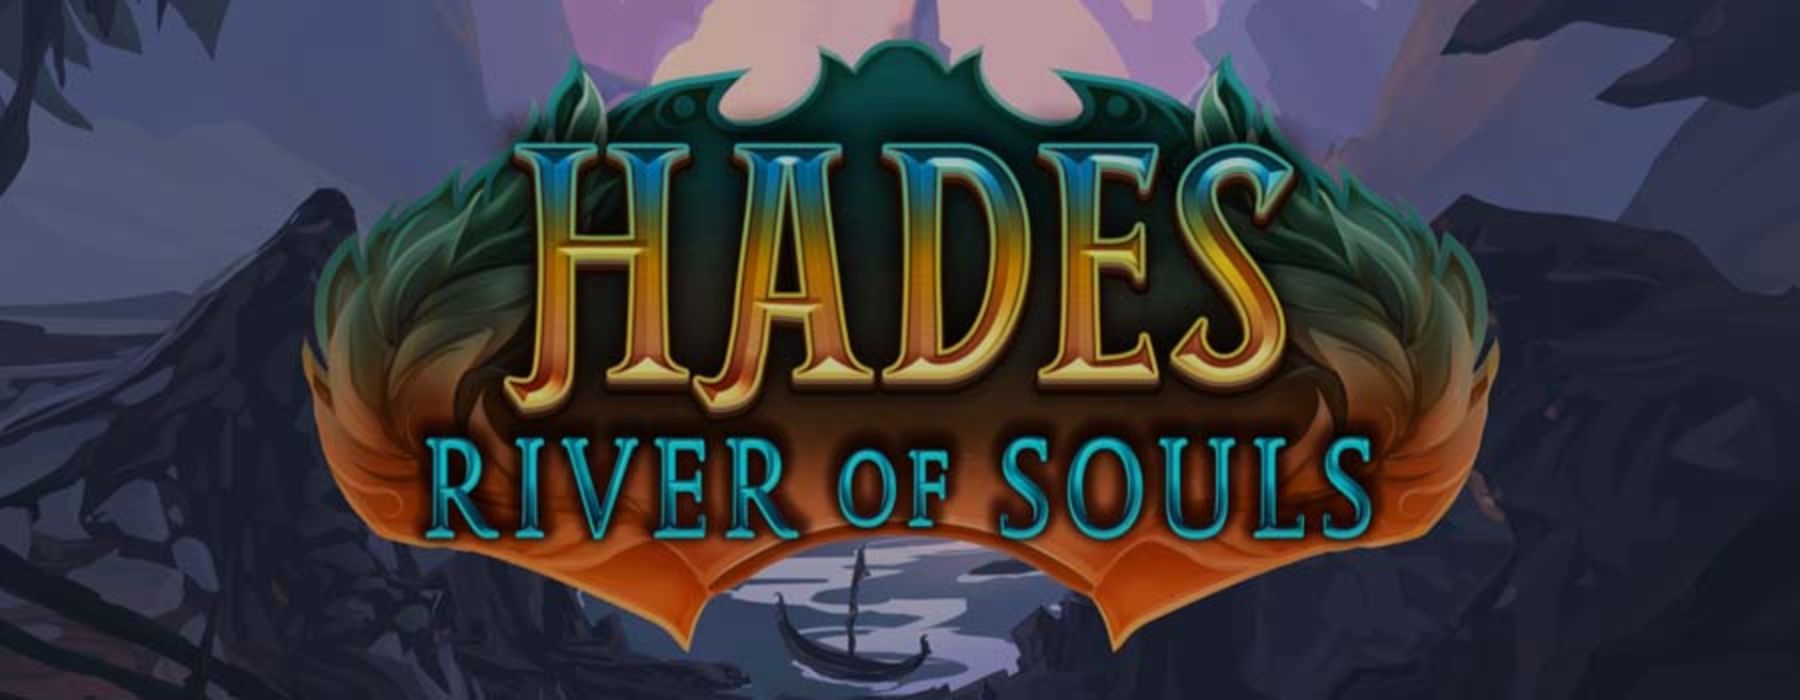 Hades River of Souls Online Slot Demo Game by Fantasma Games